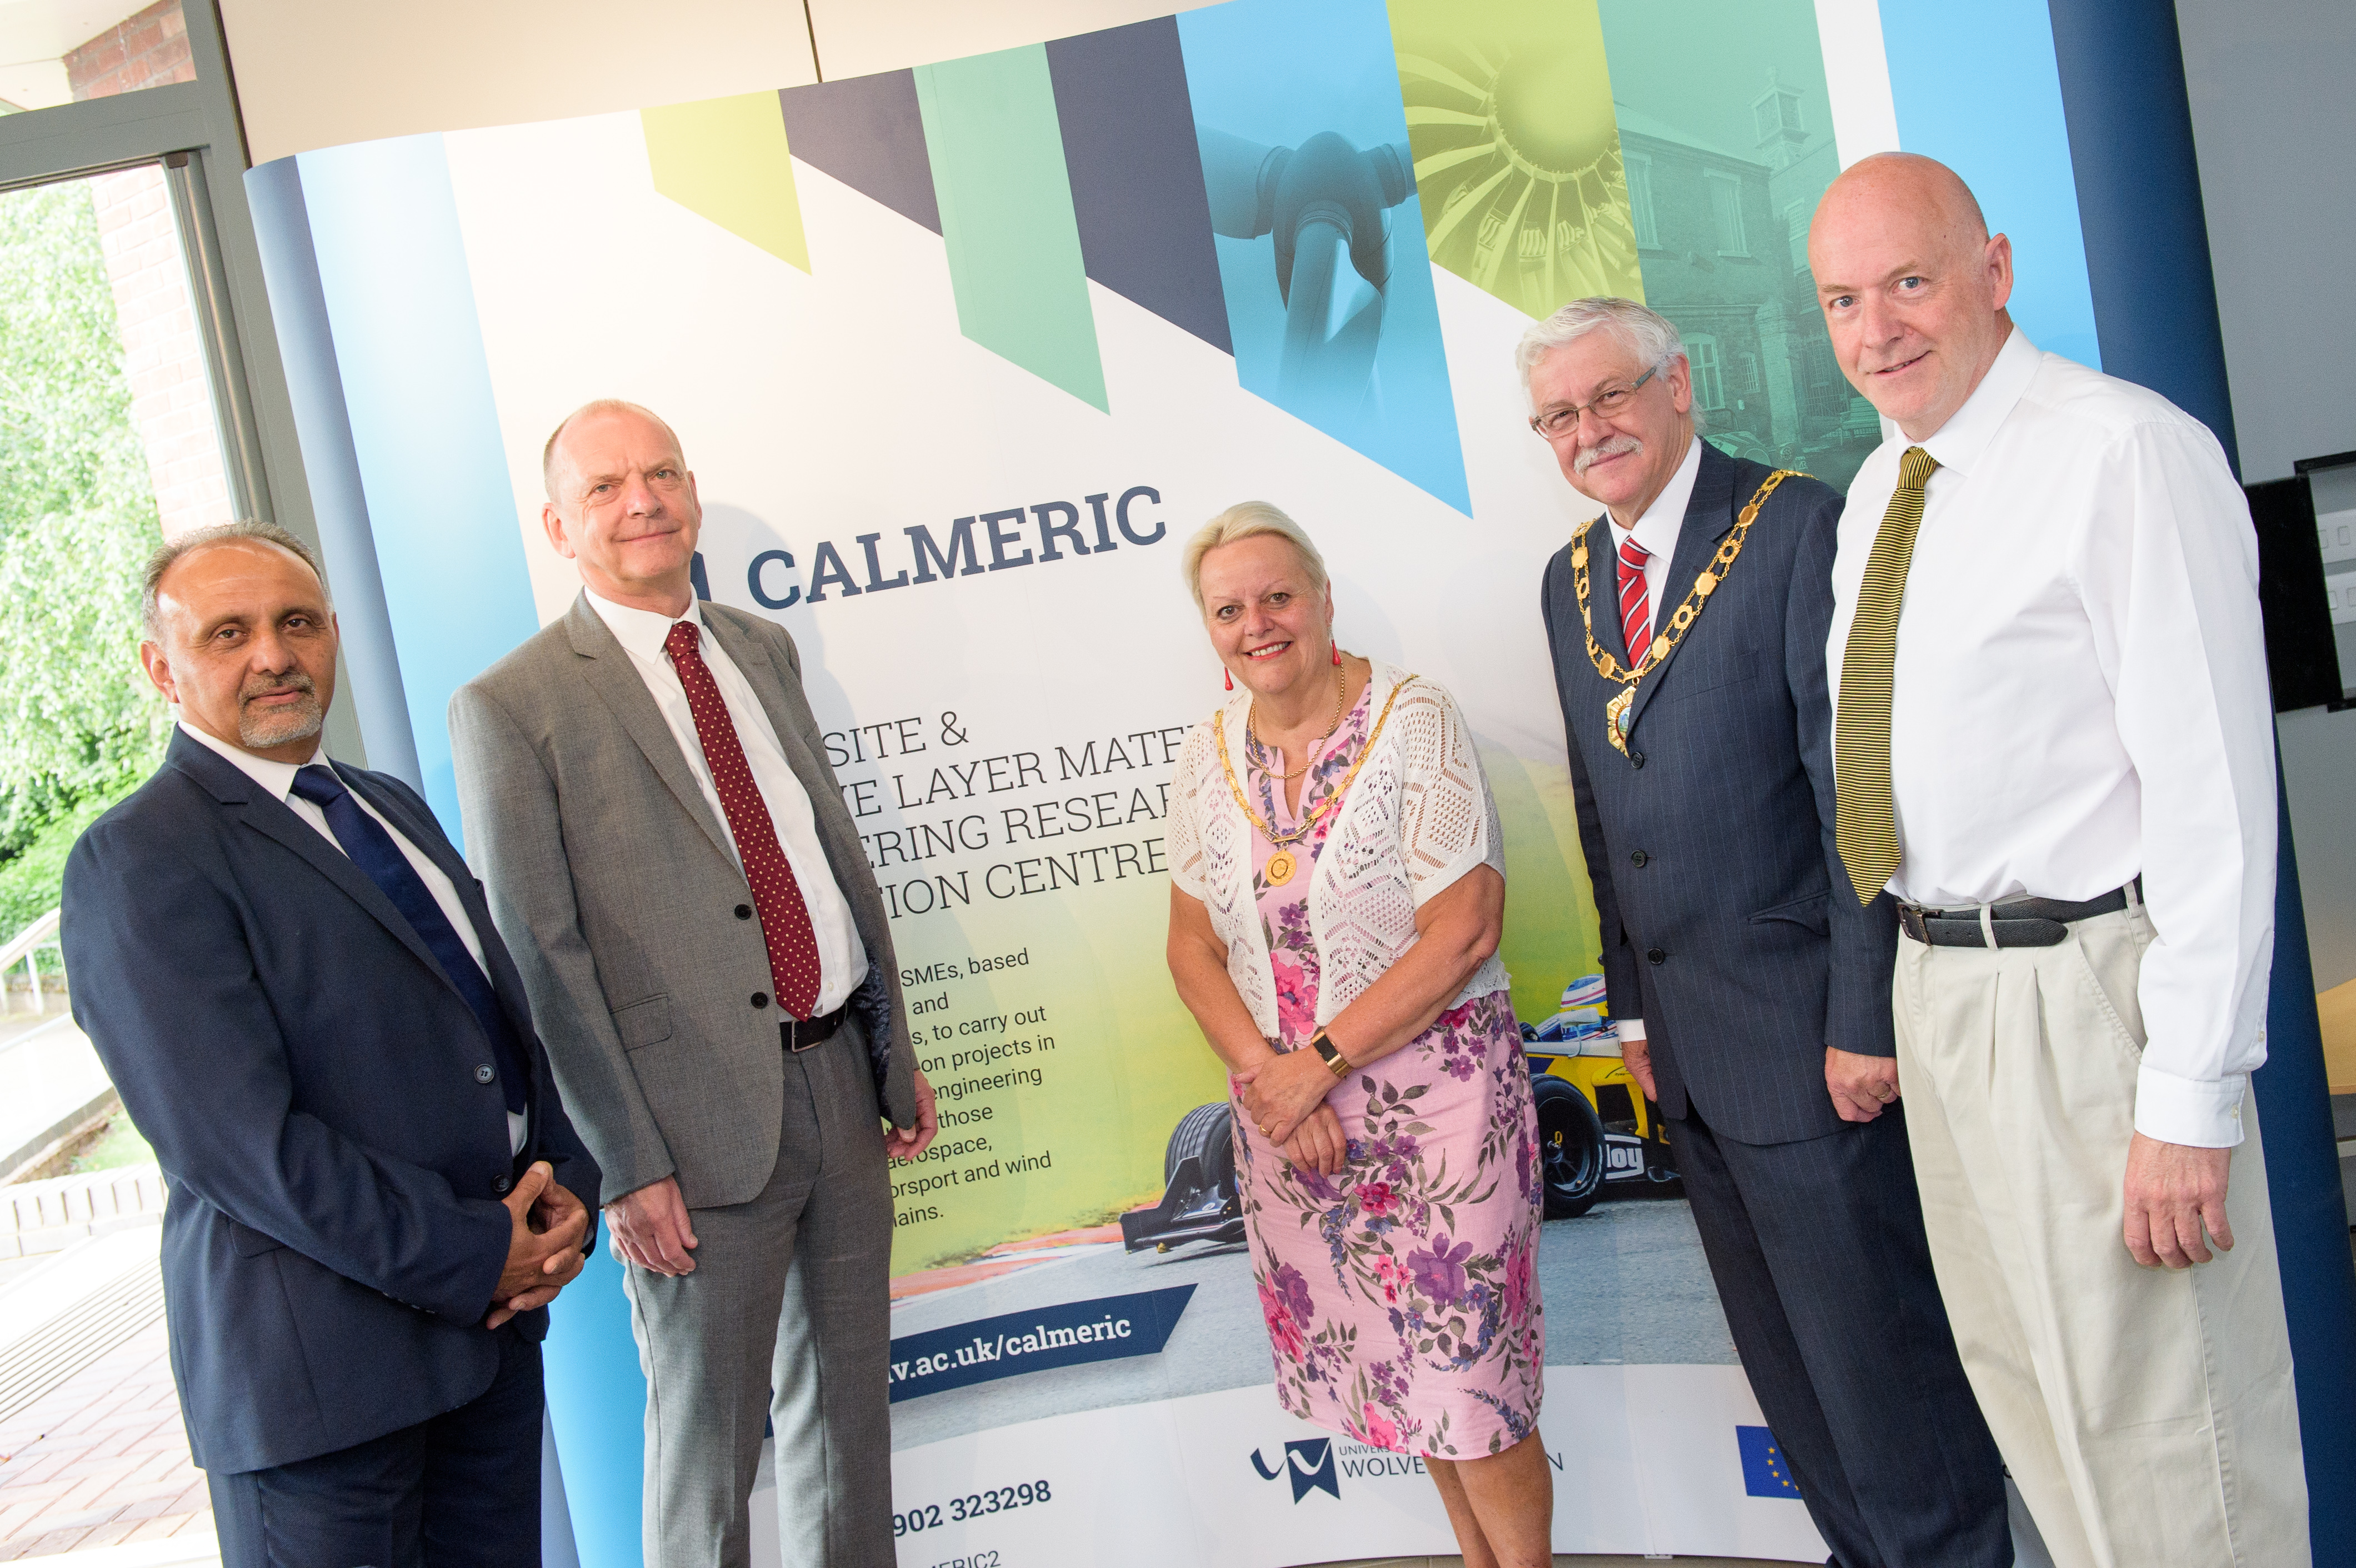 2019-07/1564394690_190719-calmeric-launch-mayor-and-mayoress